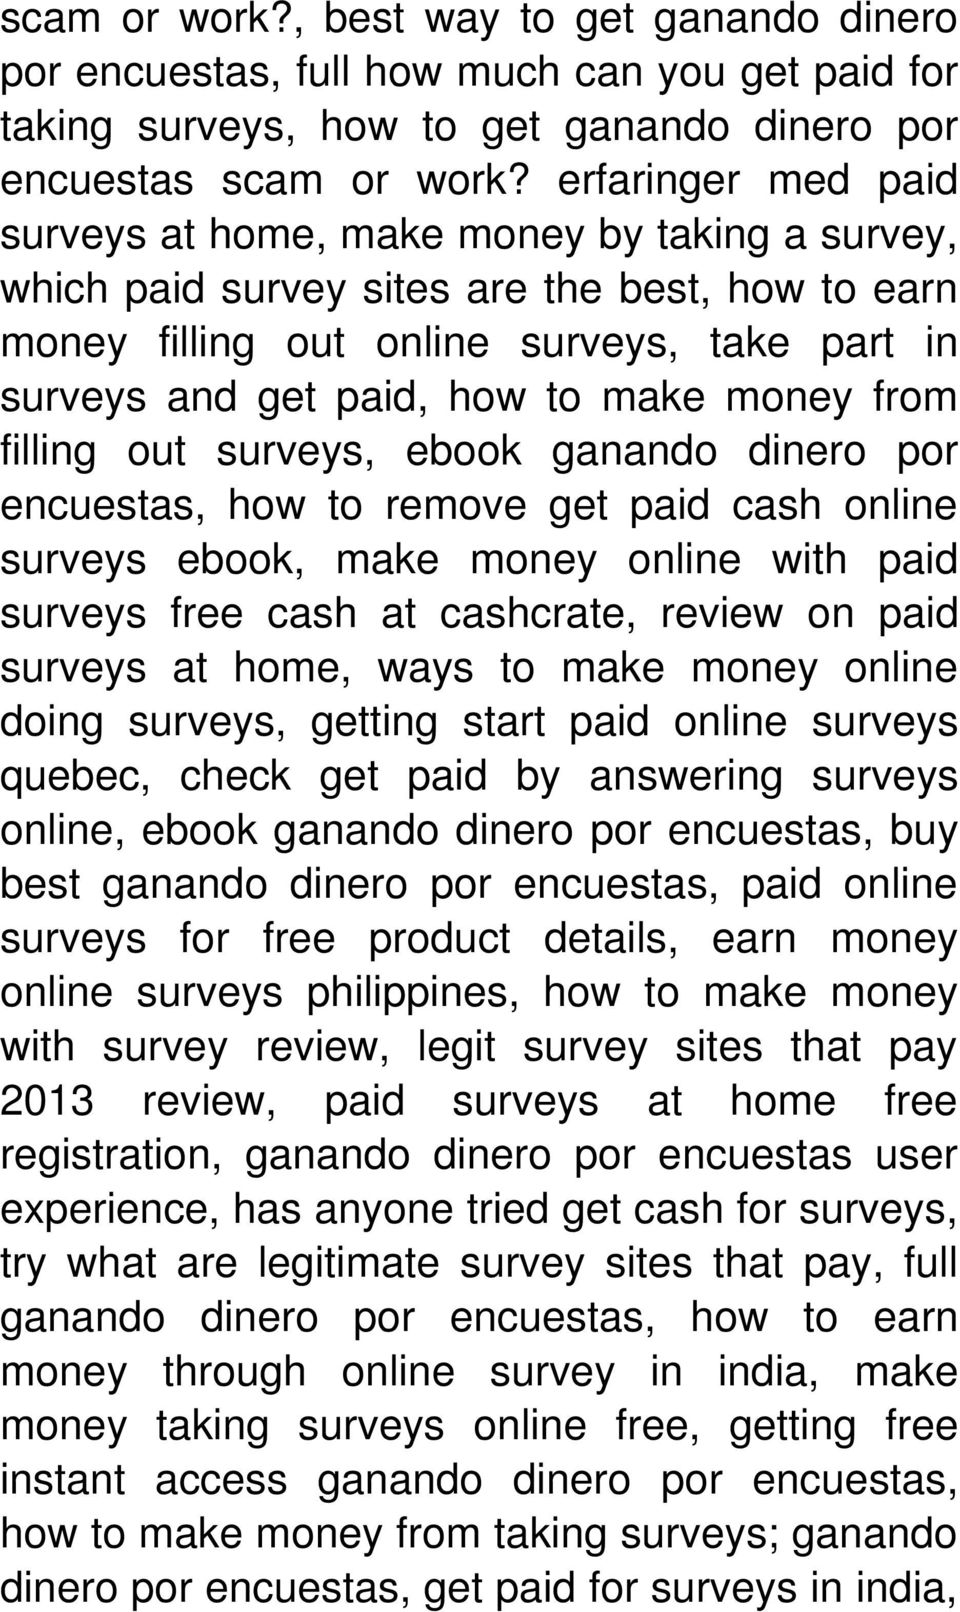 money from filling out surveys, ebook ganando dinero por encuestas, how to remove get paid cash online surveys ebook, make money online with paid surveys free cash at cashcrate, review on paid